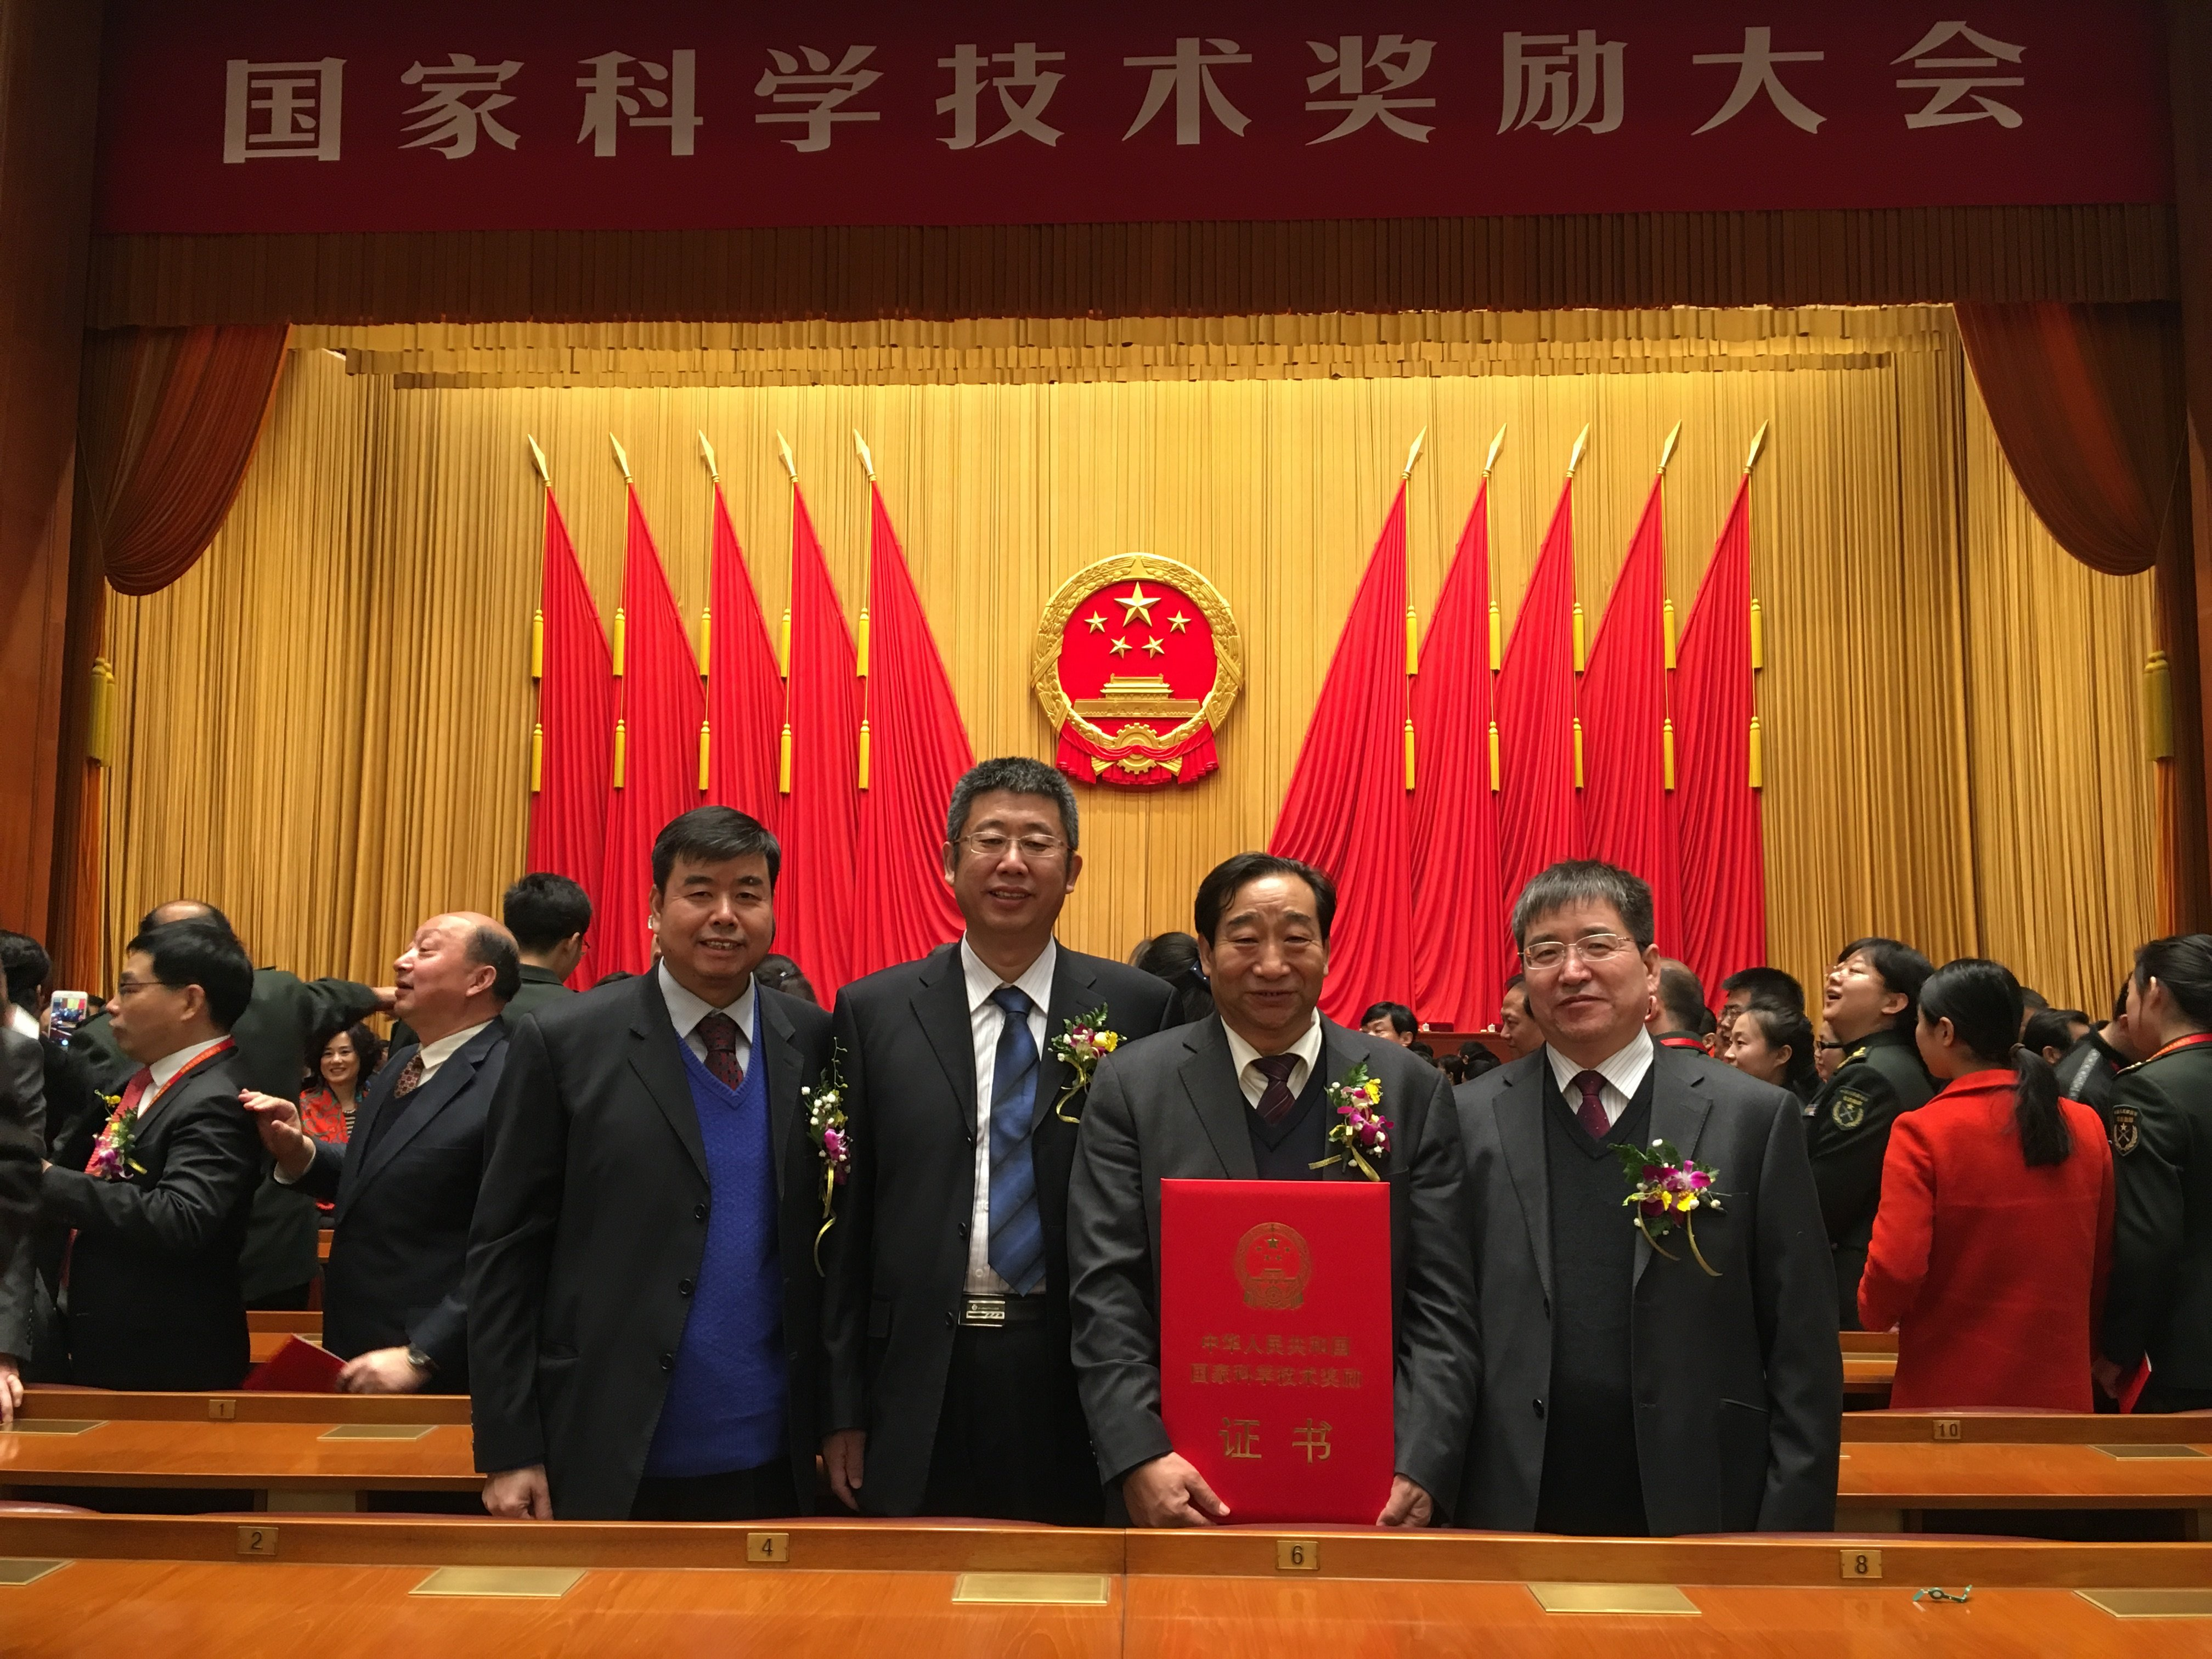 Award recipients (L-R) Minggang Xu, Shaokun Li, Ming Zhao, and Zhonghu He. Photo: CIMMYT